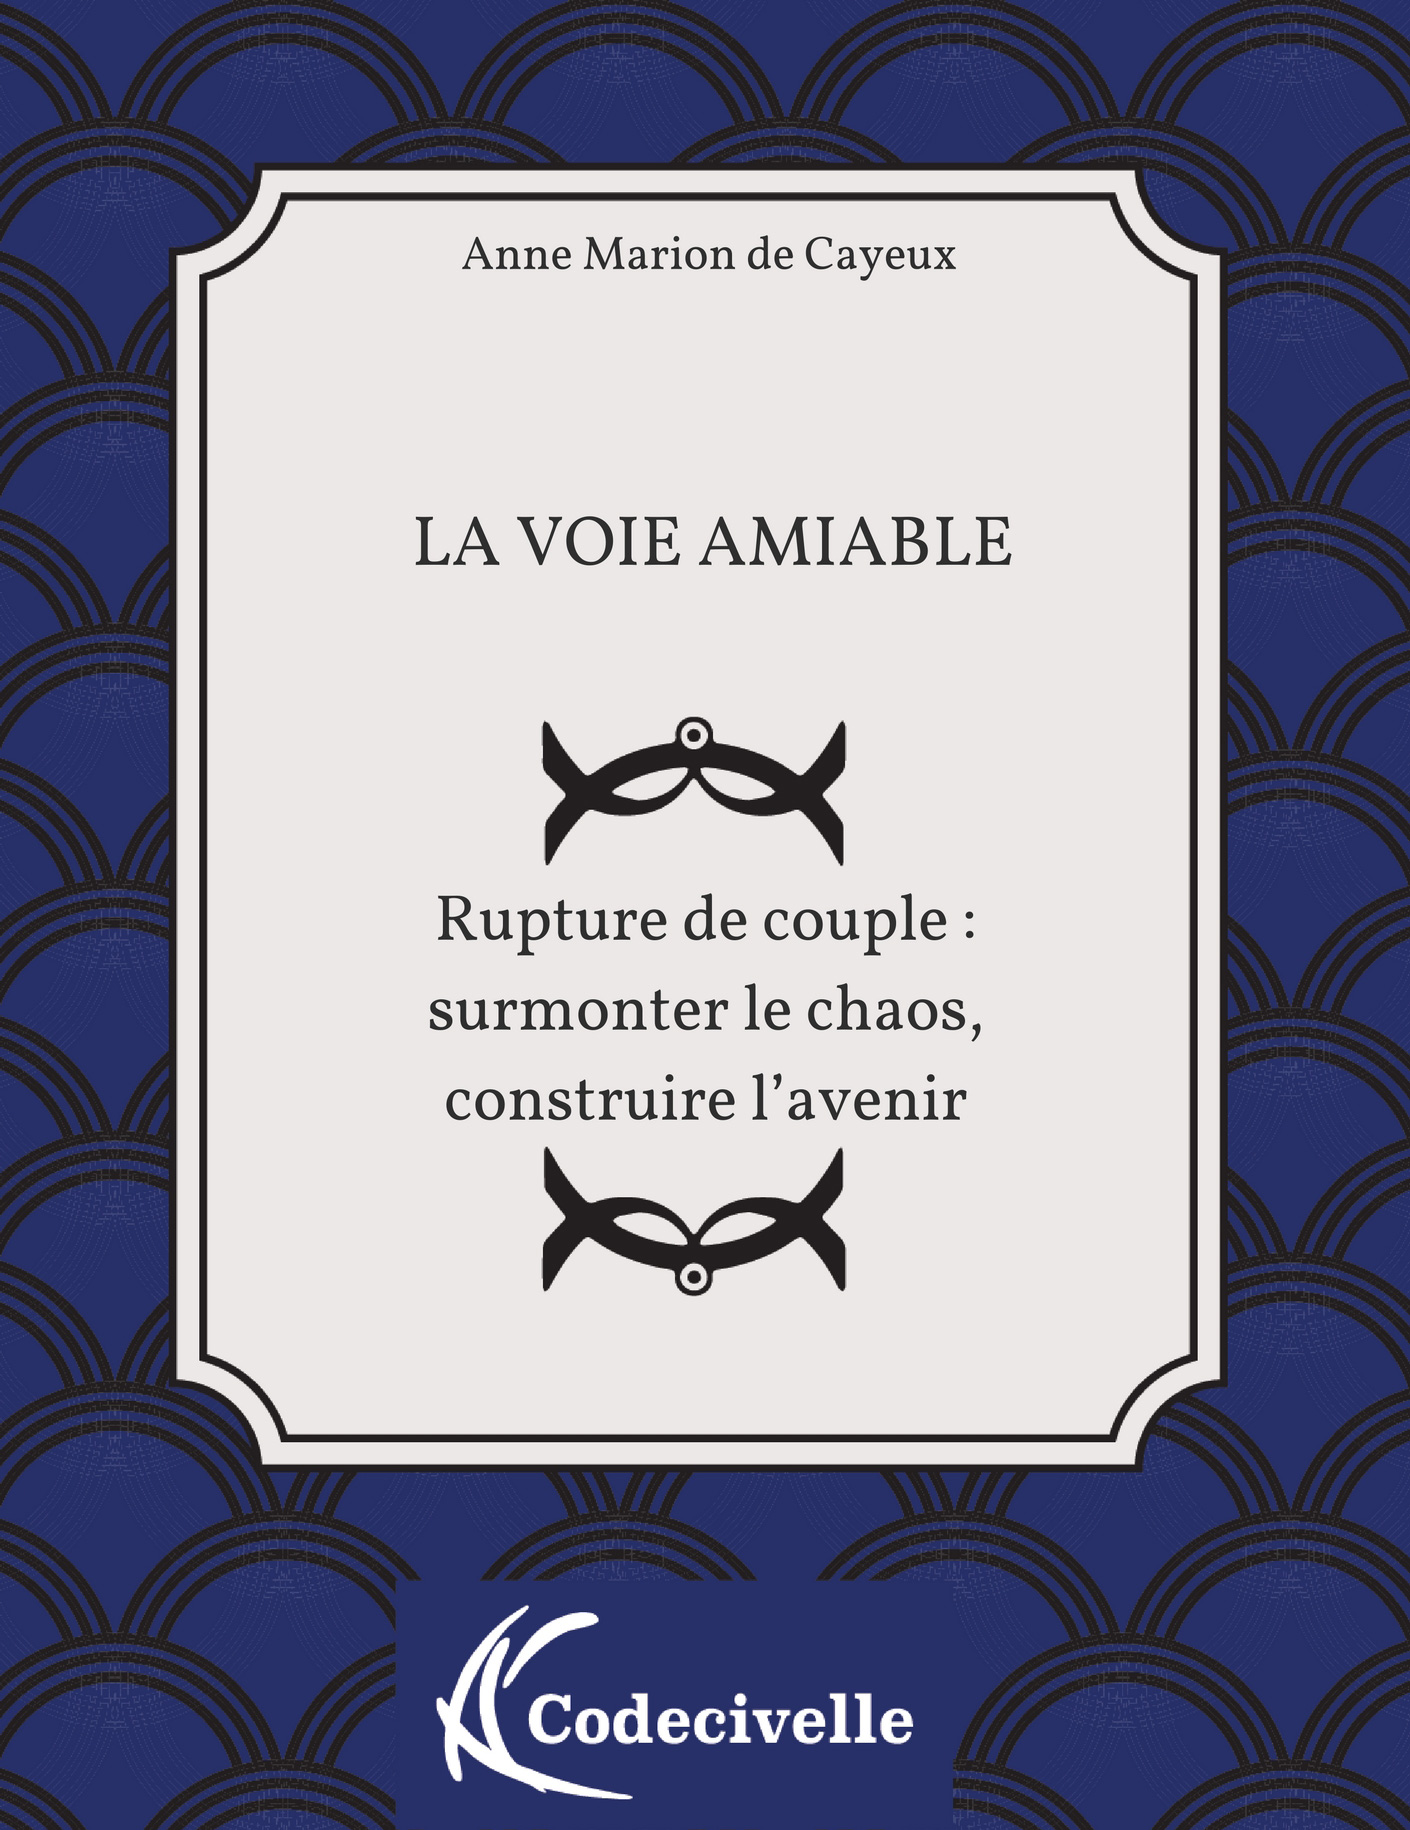 [ BOOK ] Rupture de couple, surmonter le chaos, construire l'avenir...